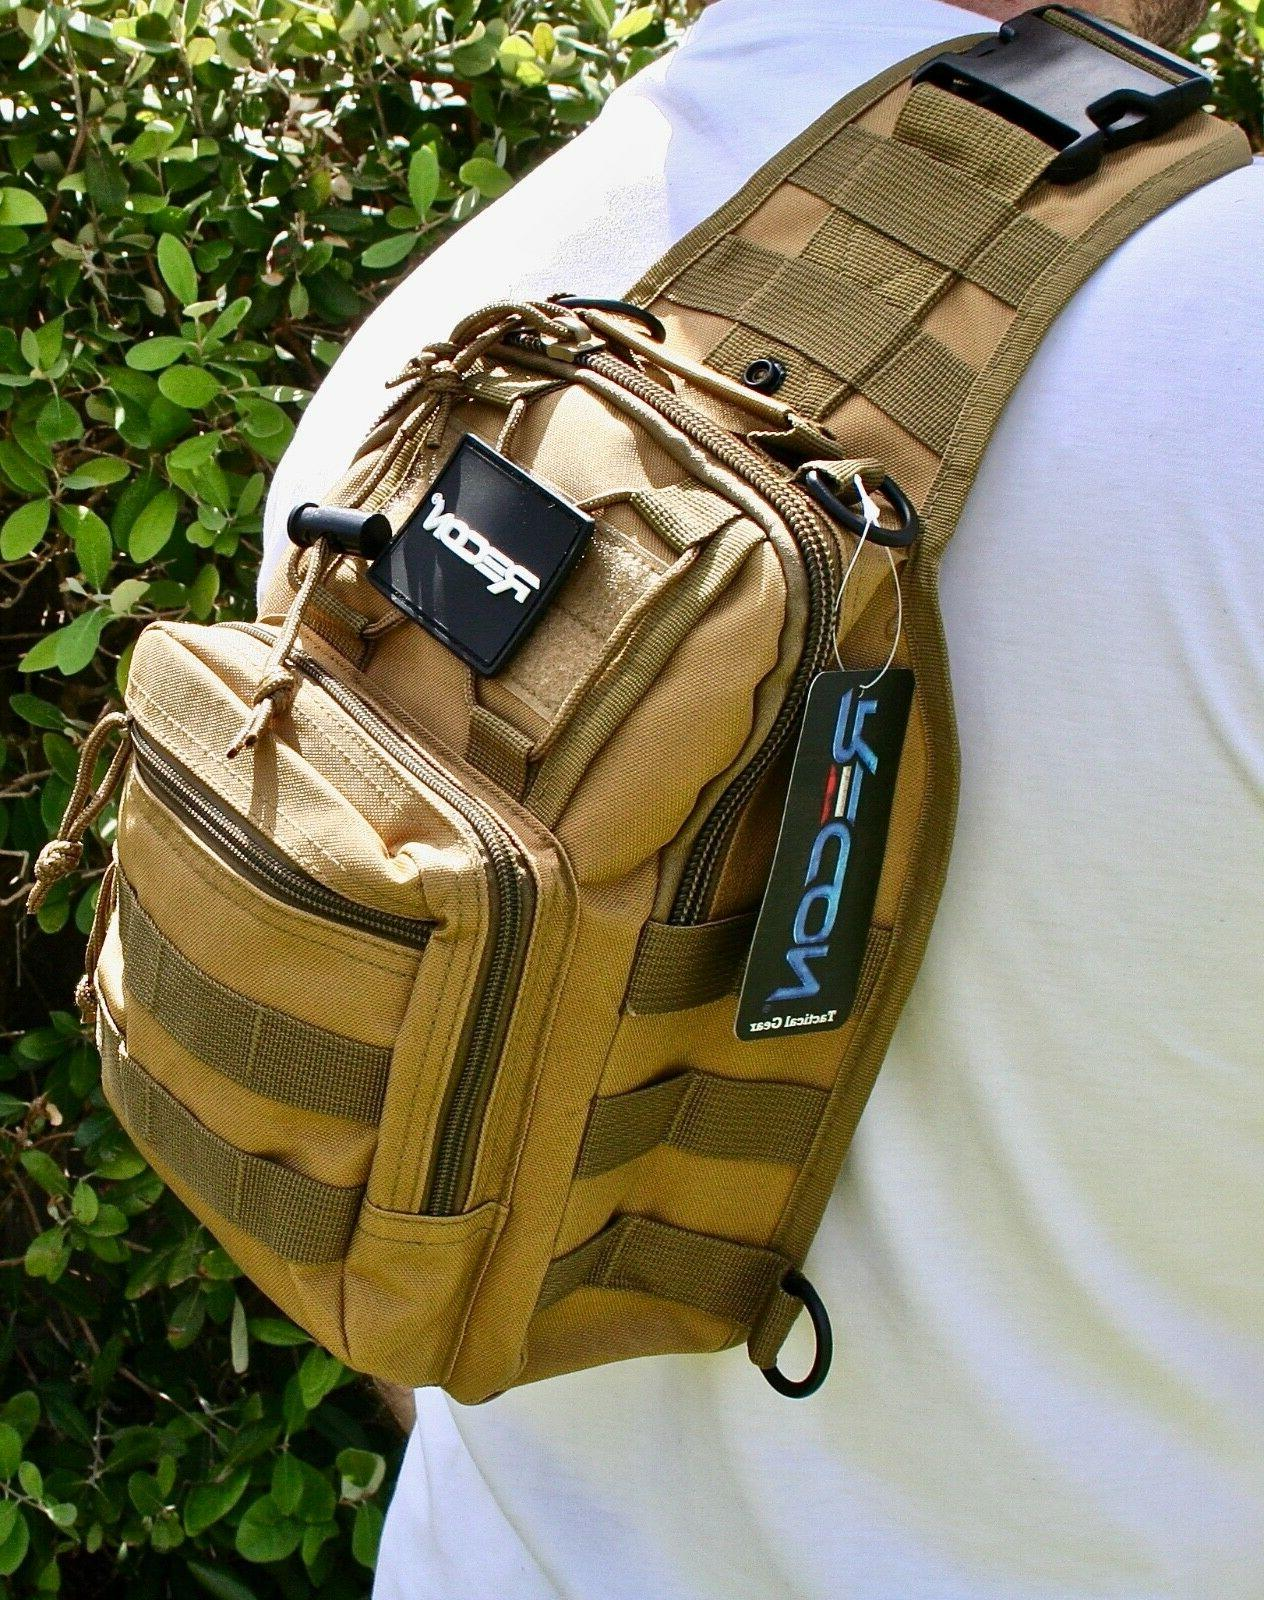 RECON TACTICAL MILITARY SLING BACKPACKS